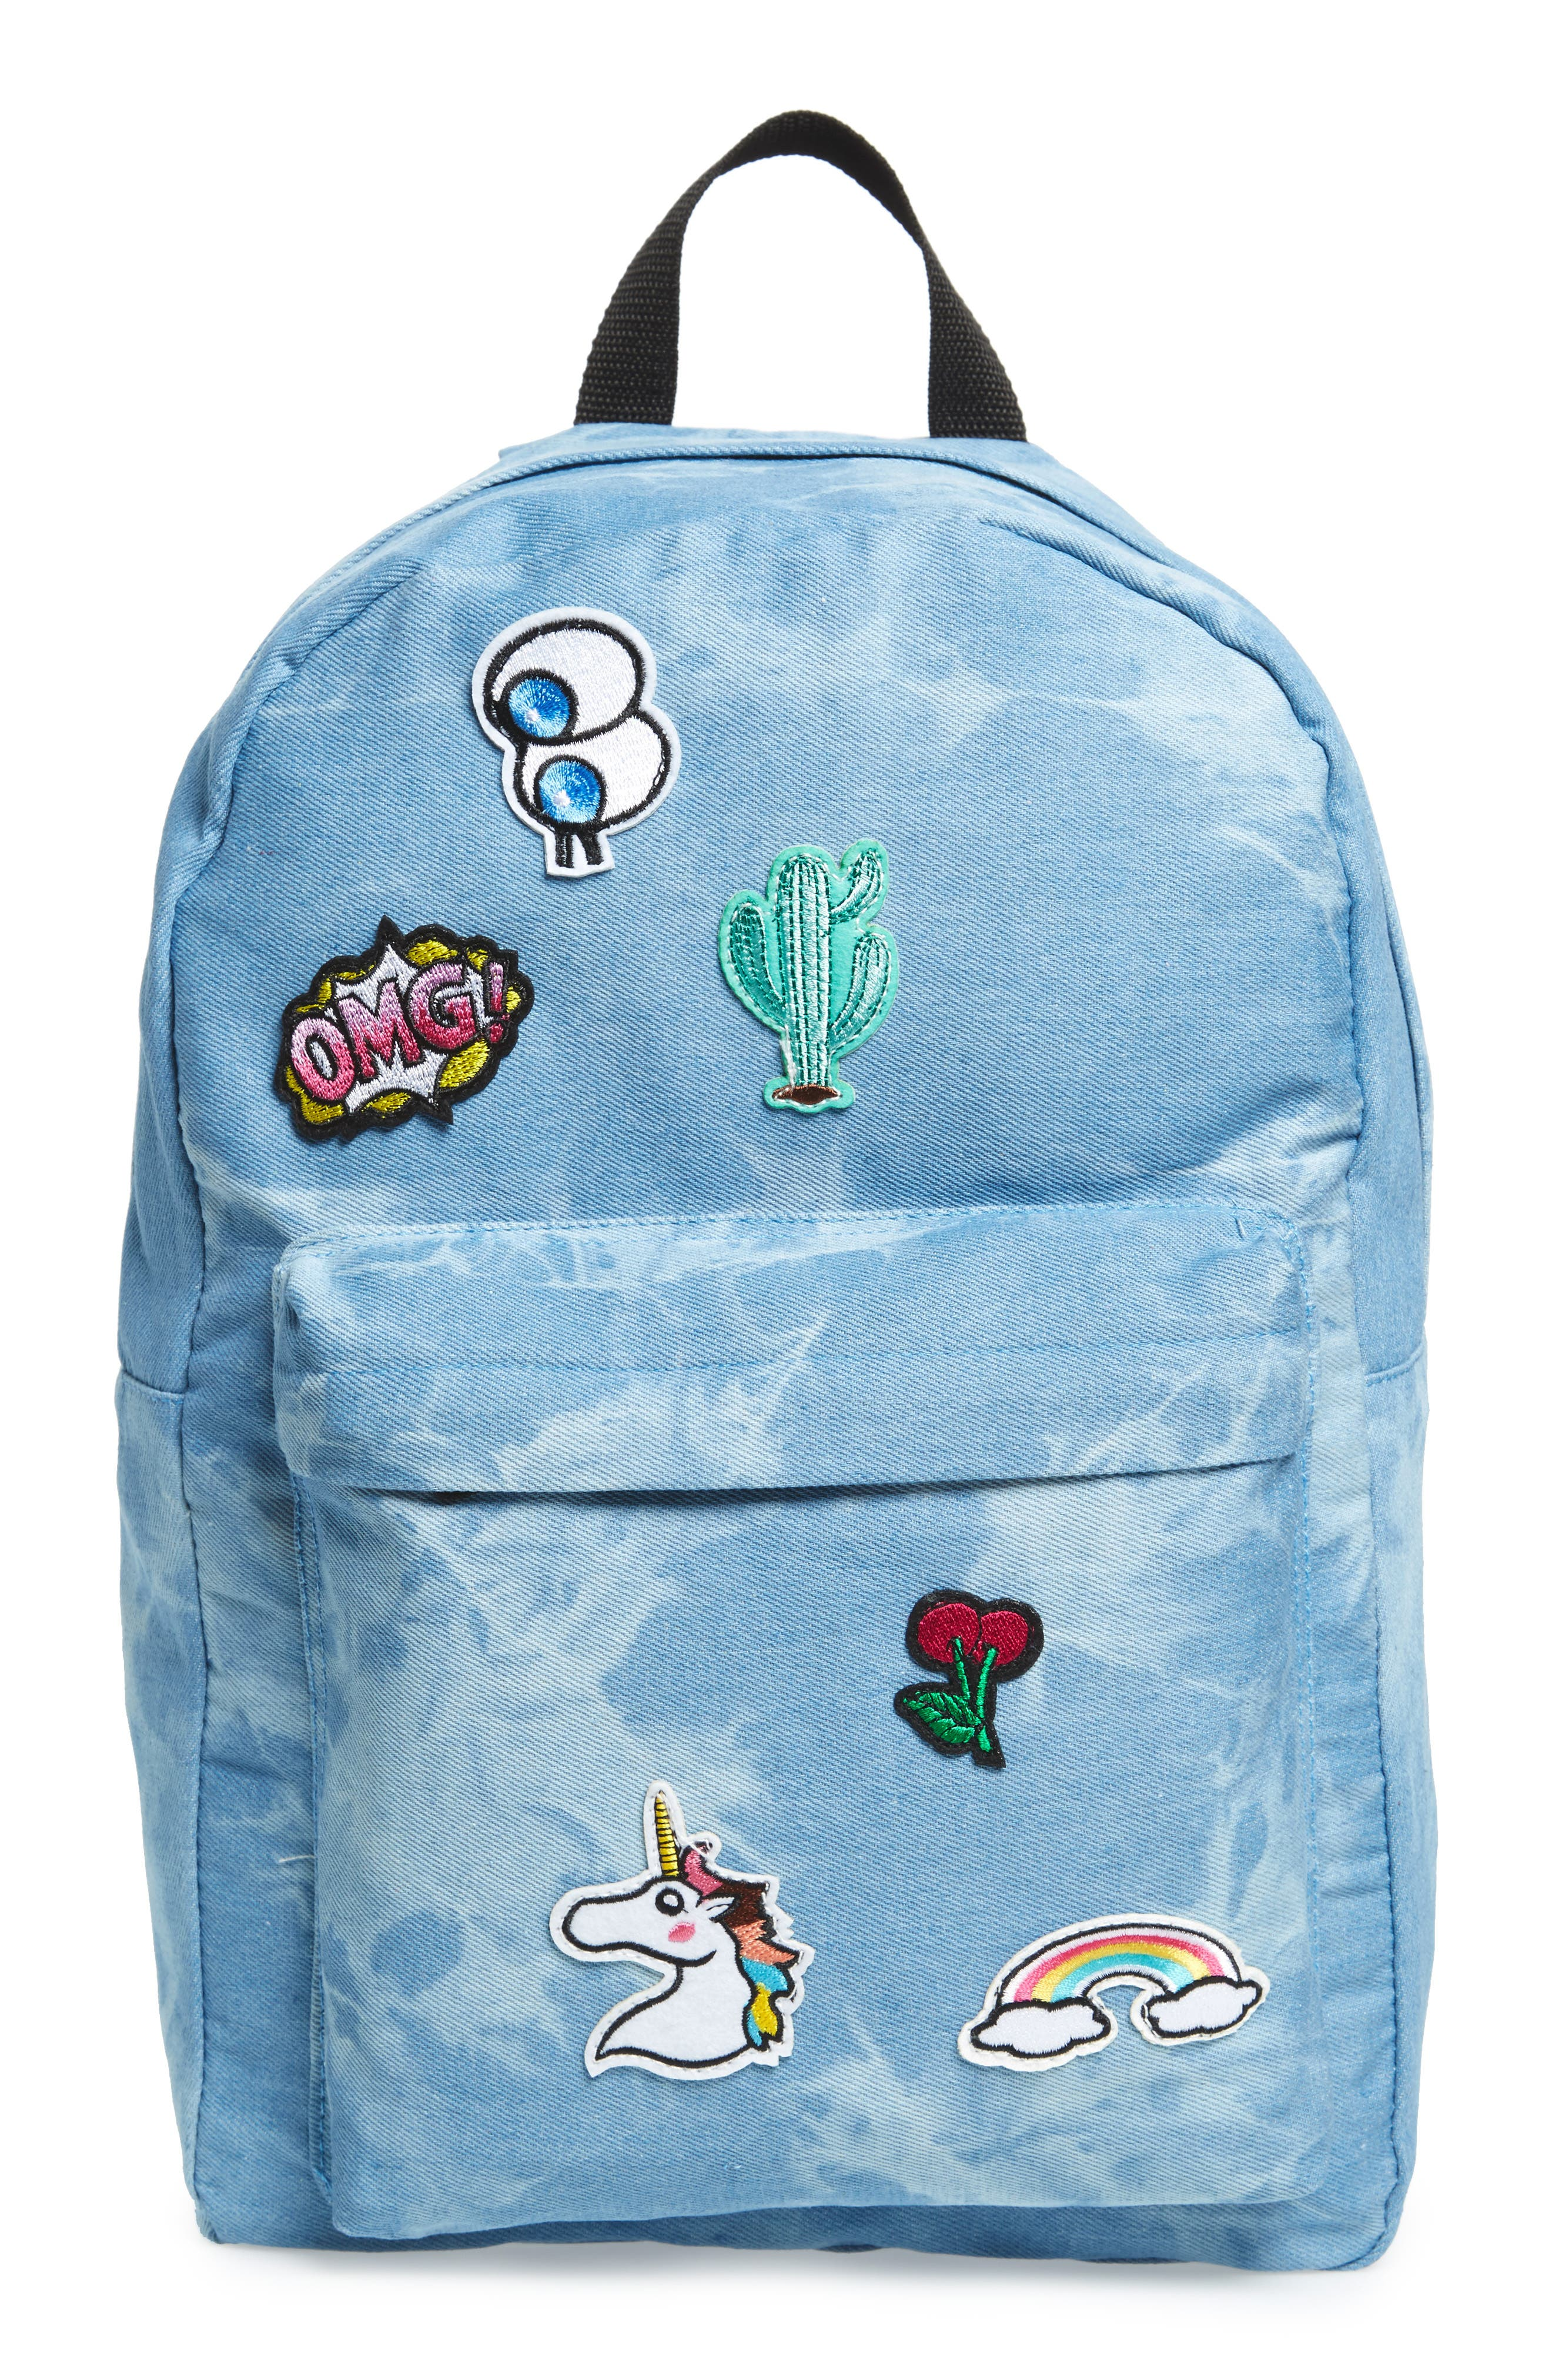 THE ACCESSORY COLLECTIVE Accessory Collective Tie Dye Backpack